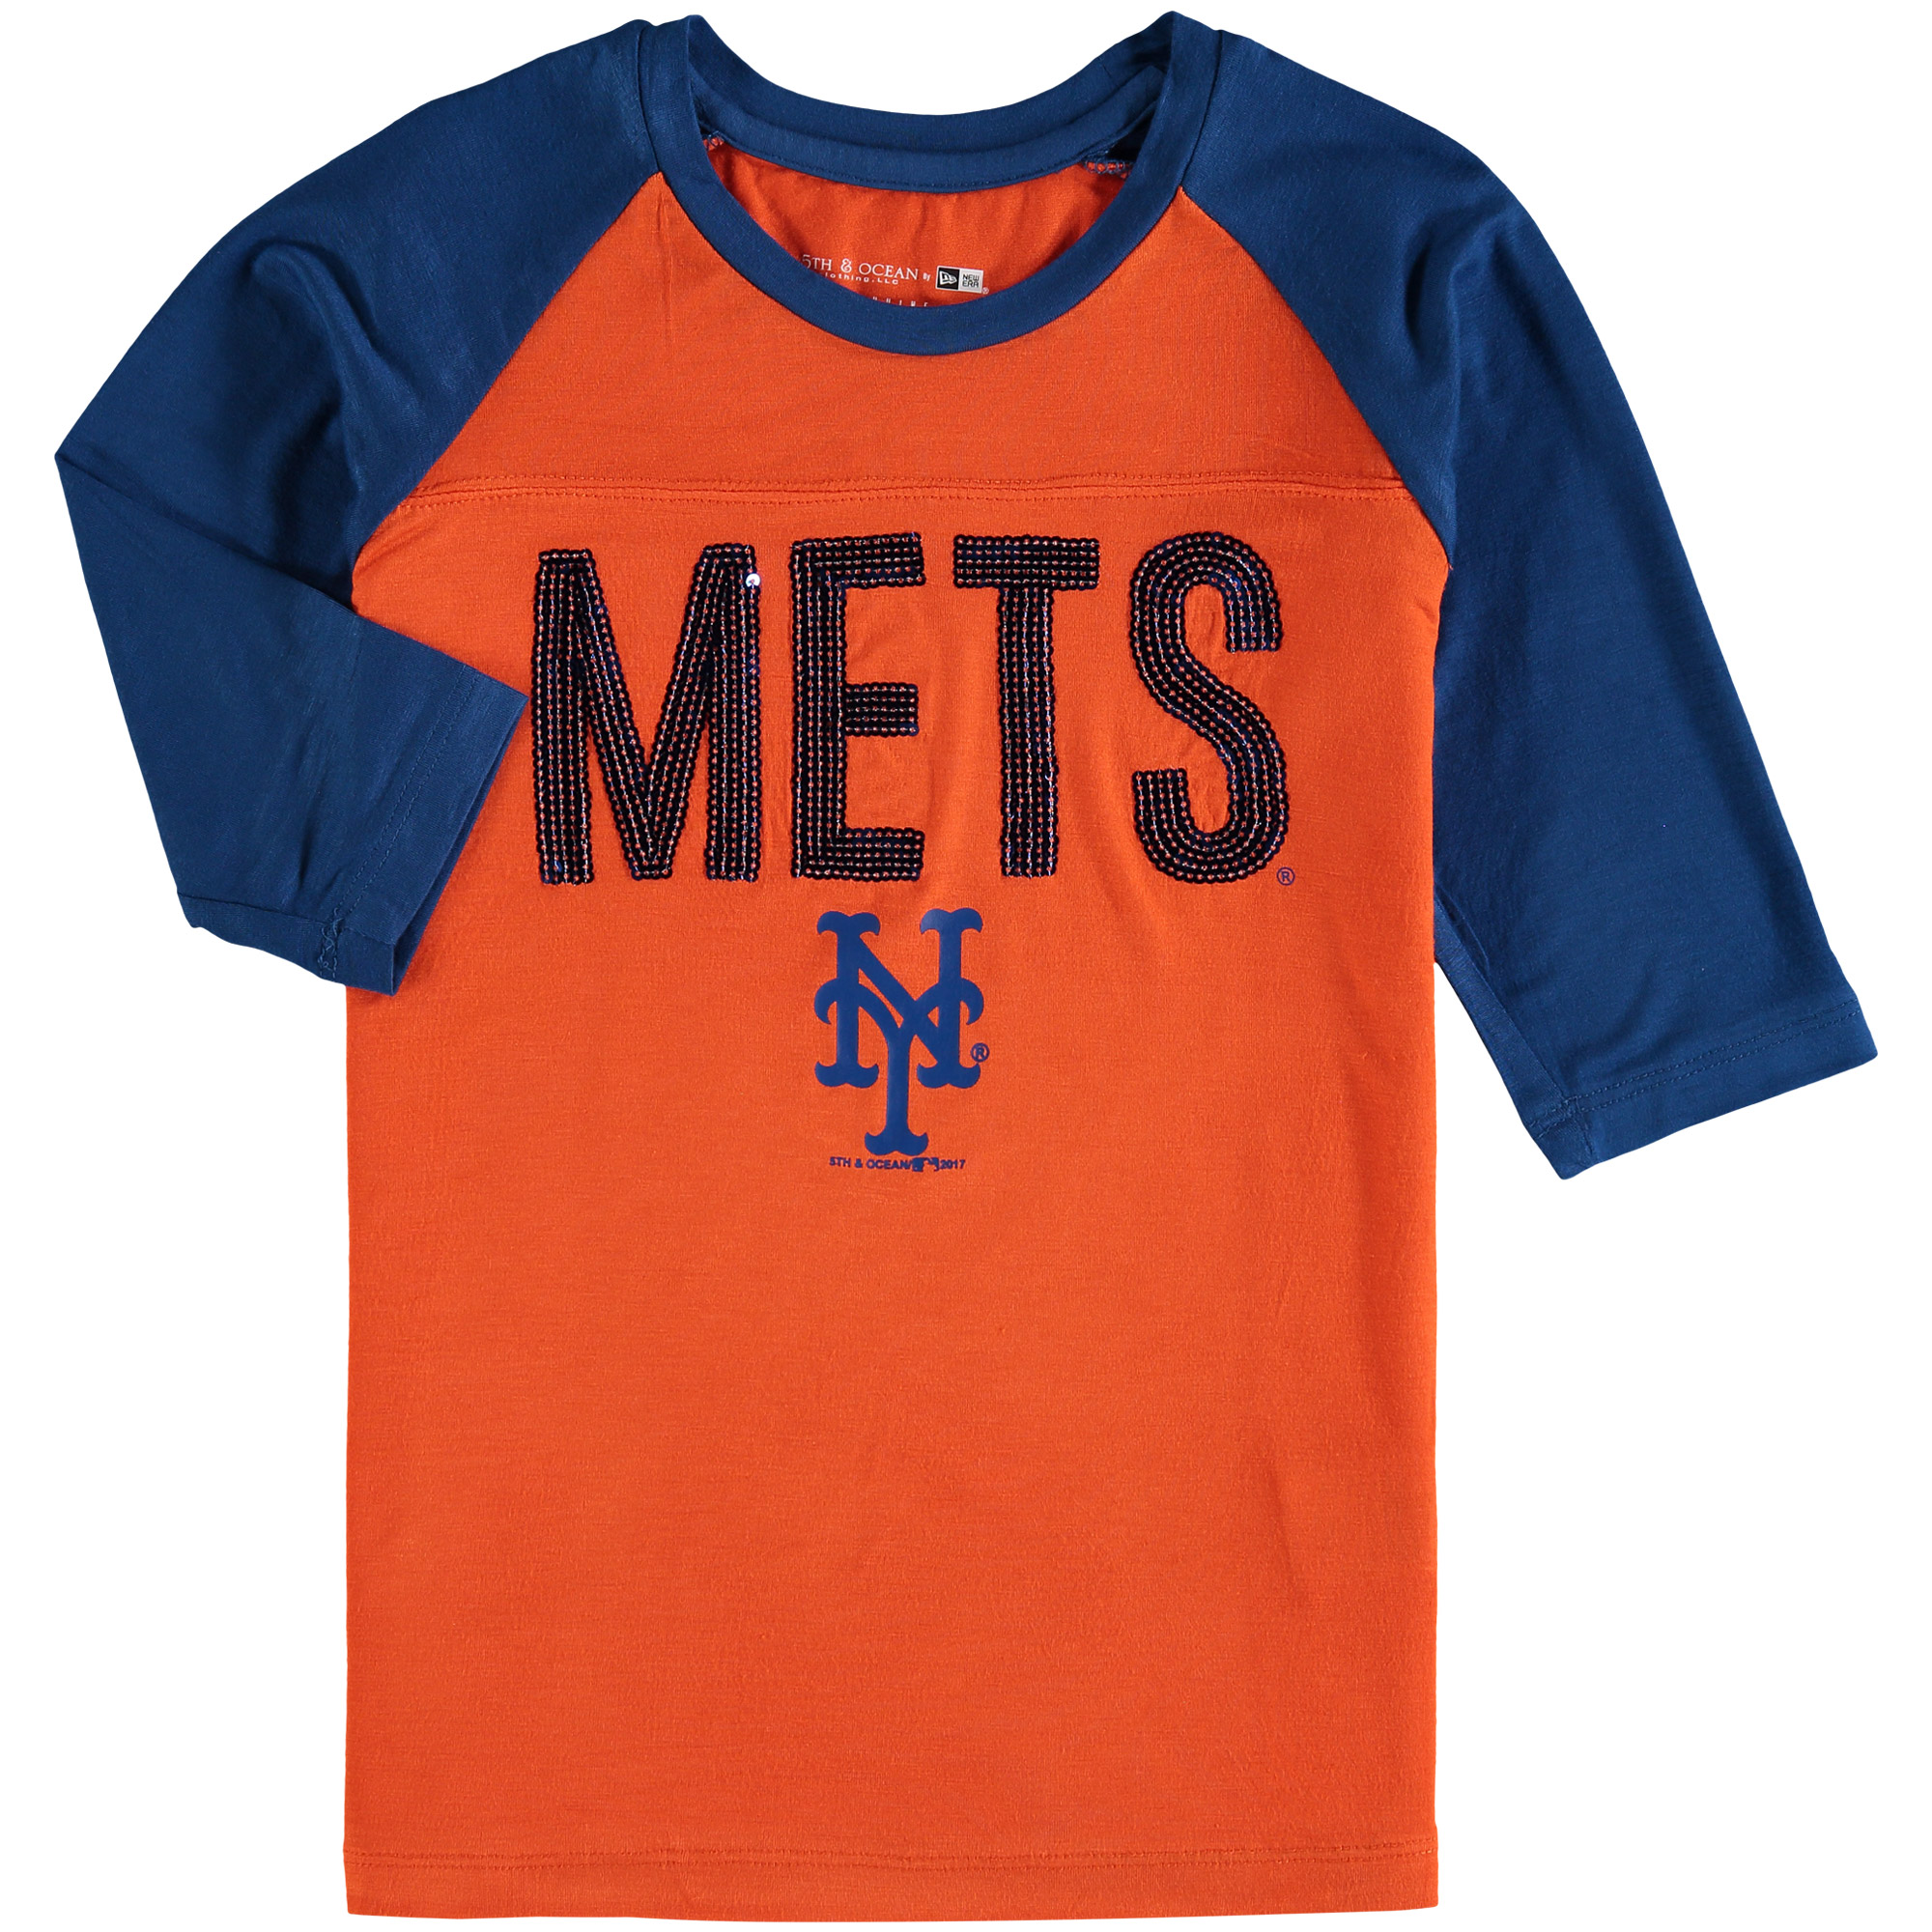 New York Mets New Era Girls Youth Crew Neck Raglan 3/4-Sleeve T-Shirt Orange/Royal